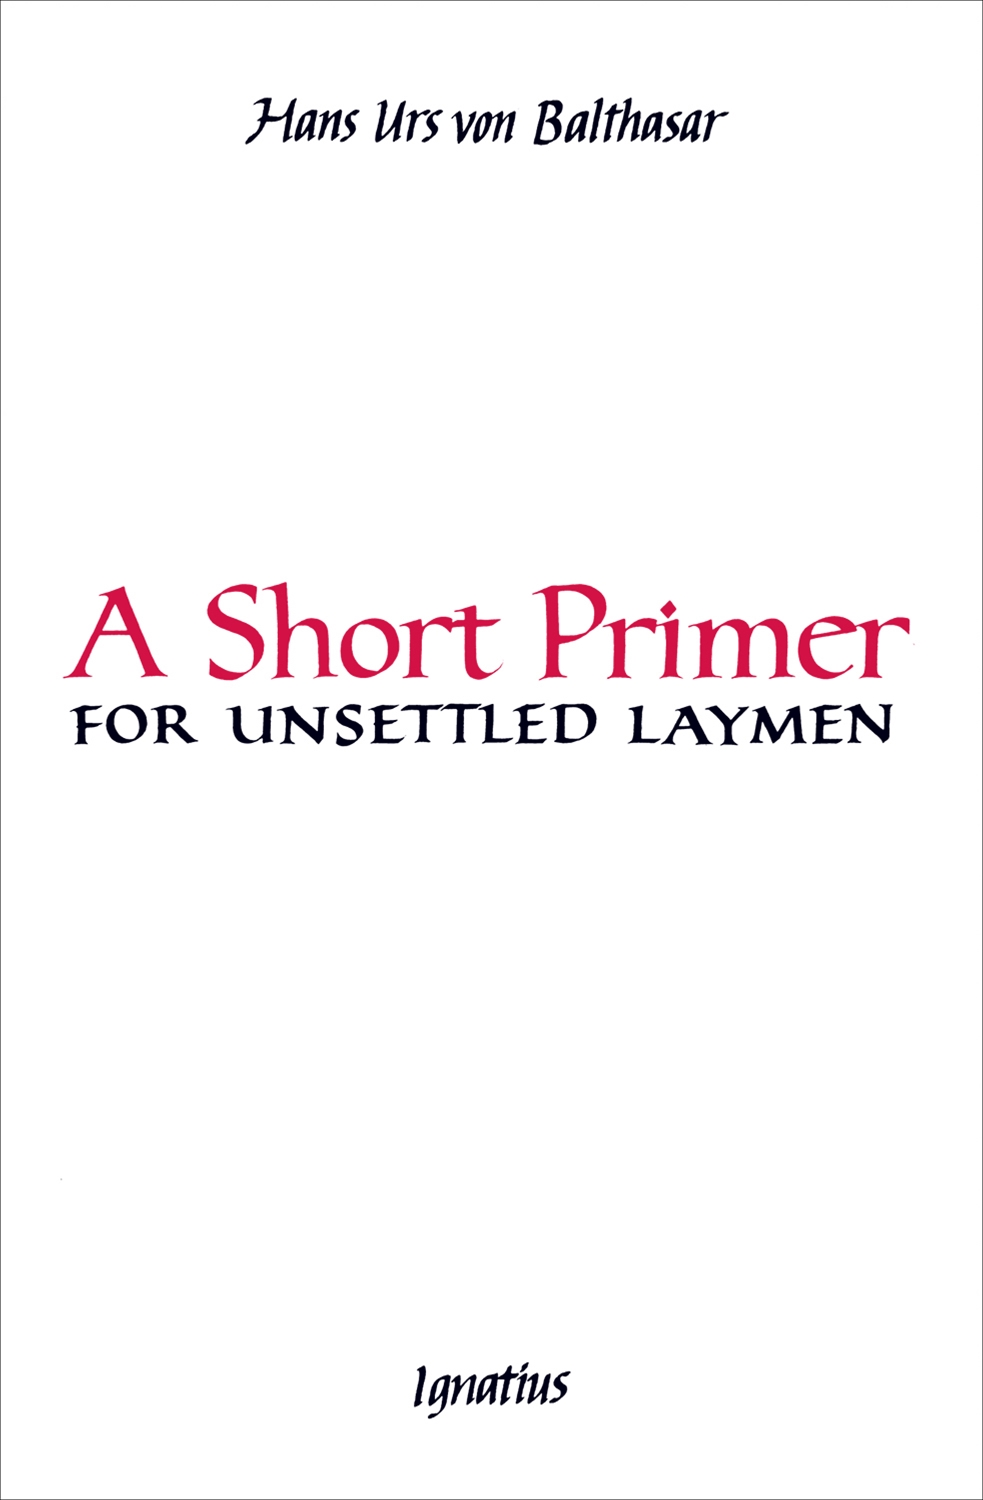 short primer for unsettled laymen